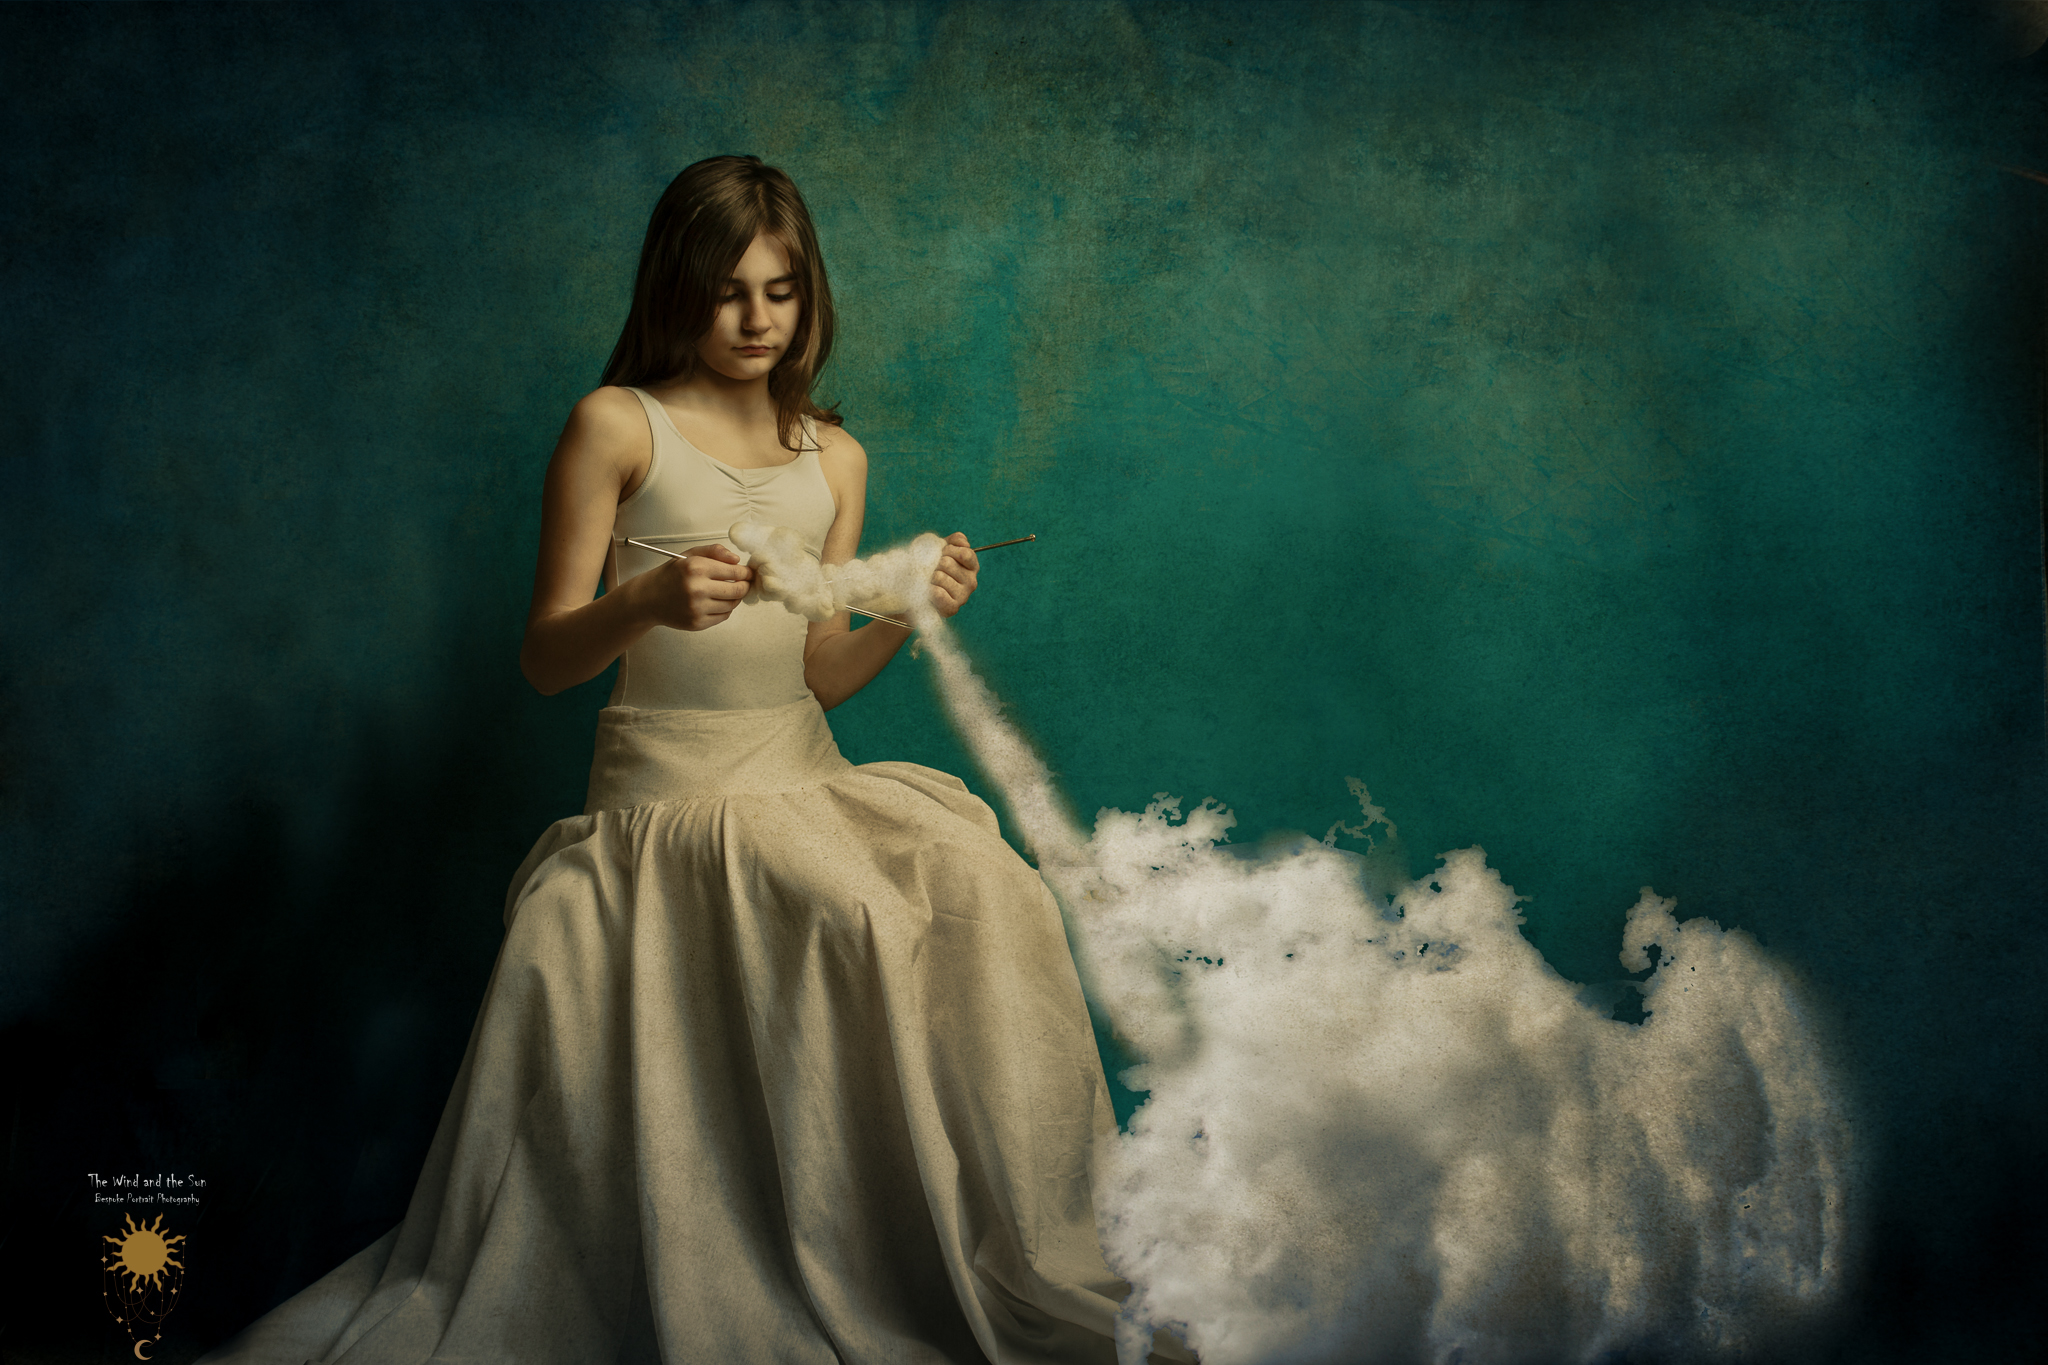 Fine art photo of a girl knitting clouds